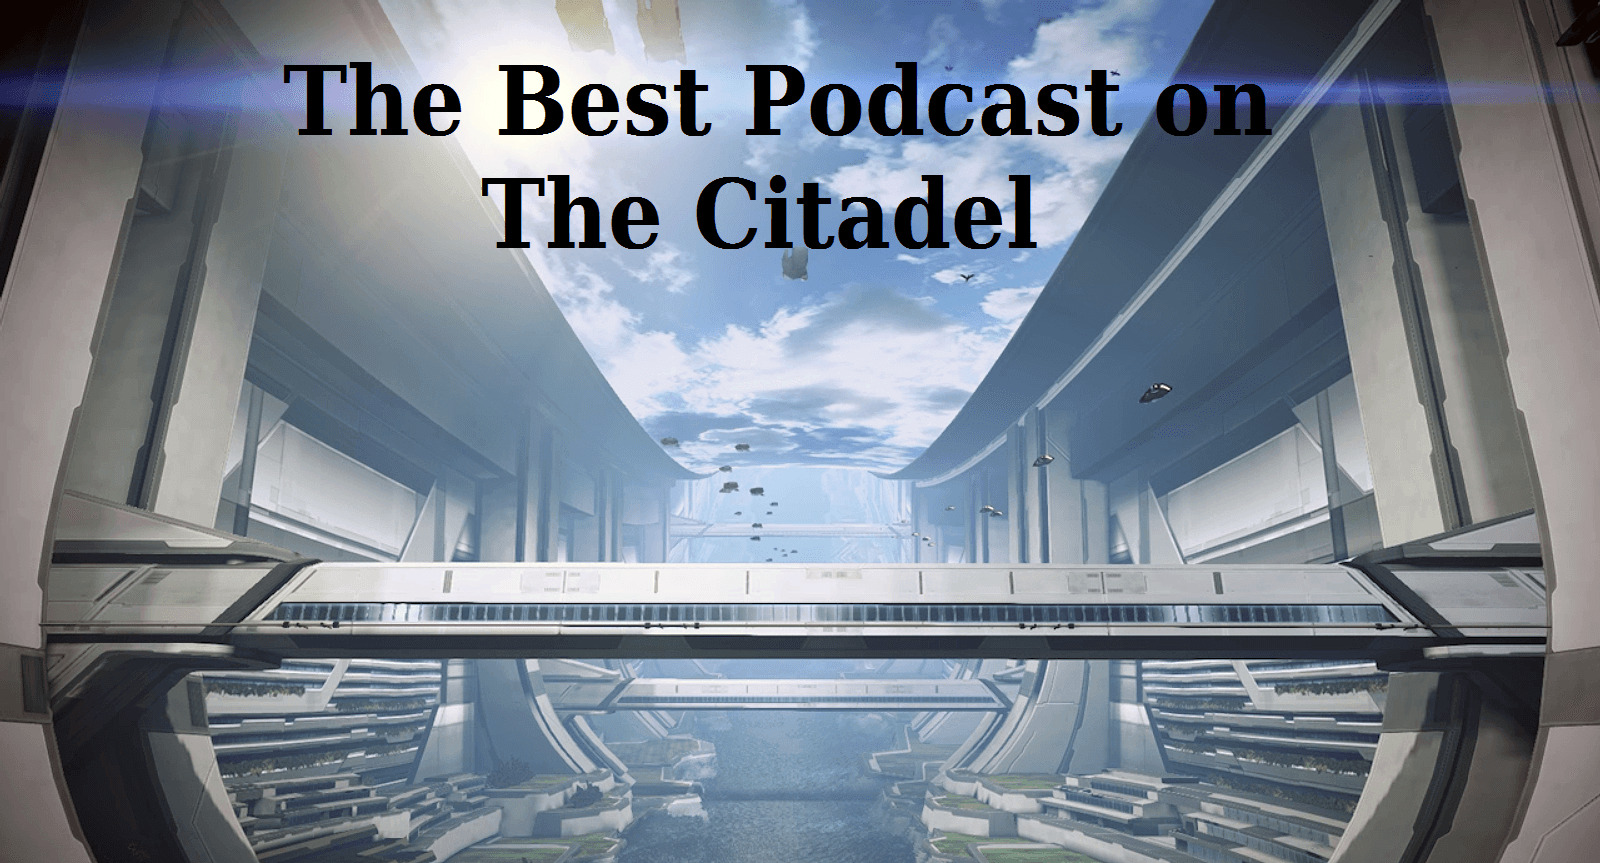 The Best Podcast on the Citadel, Ep. 30